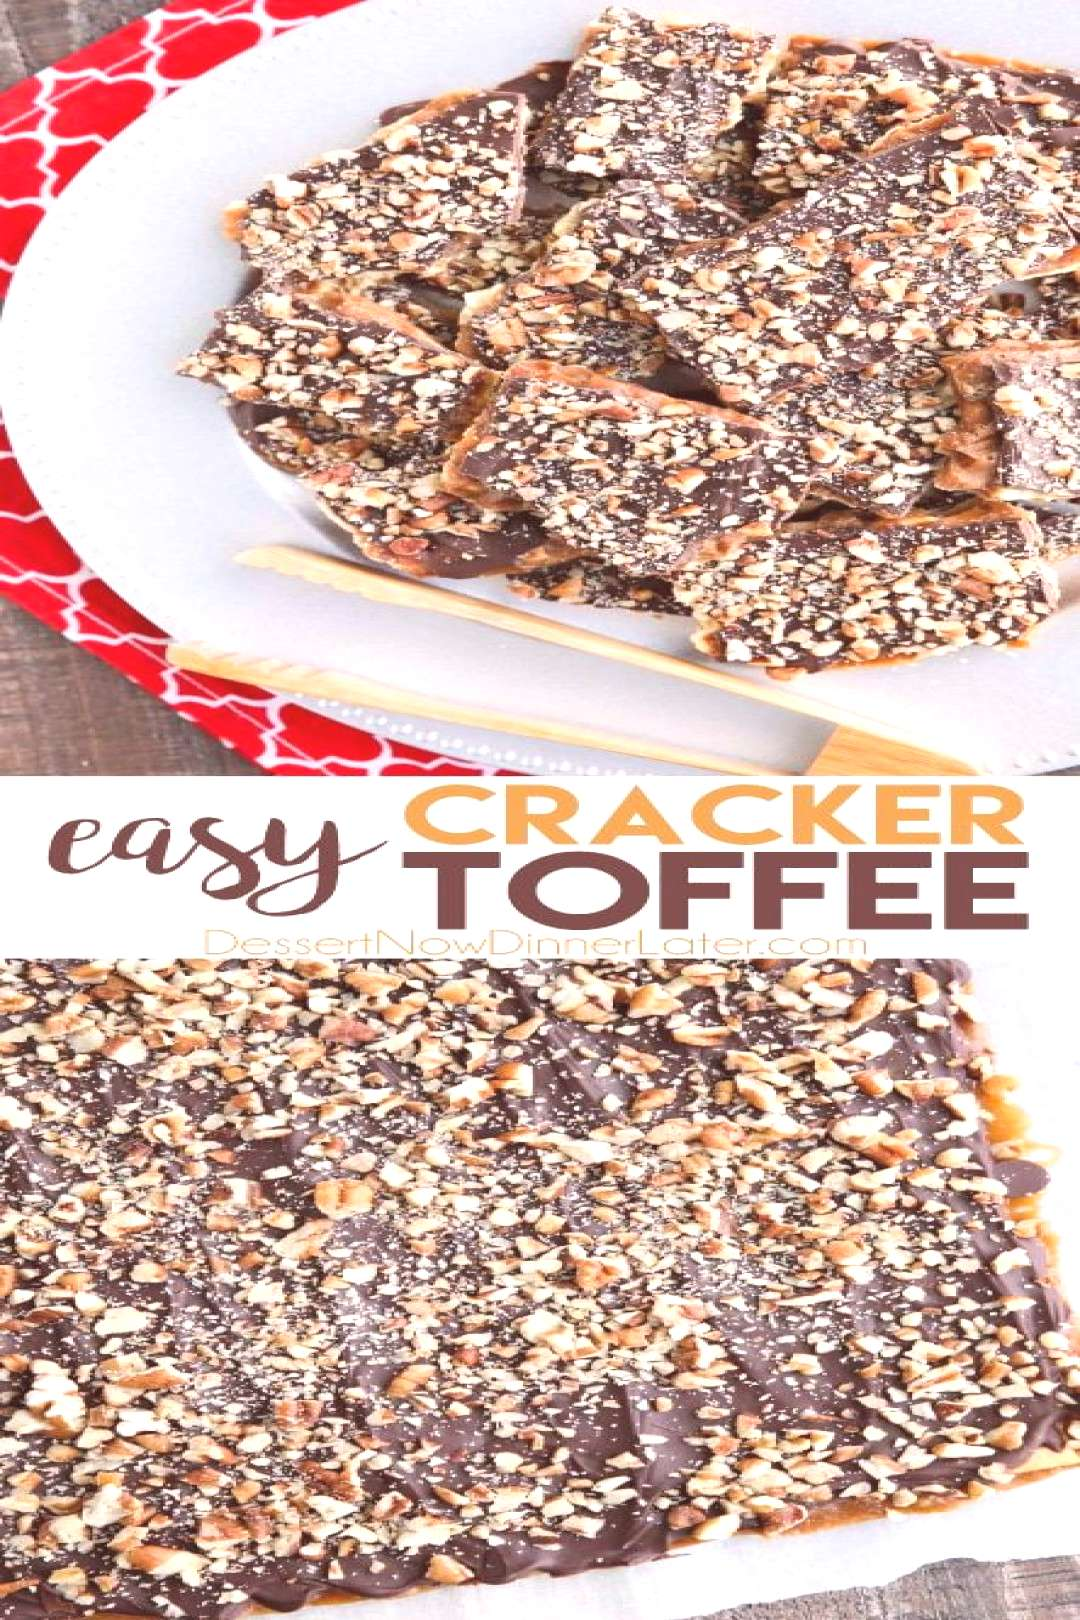 Cracker Toffee (aka Christmas Crack) is so easy to make and highly addictive! Saltine crackers are